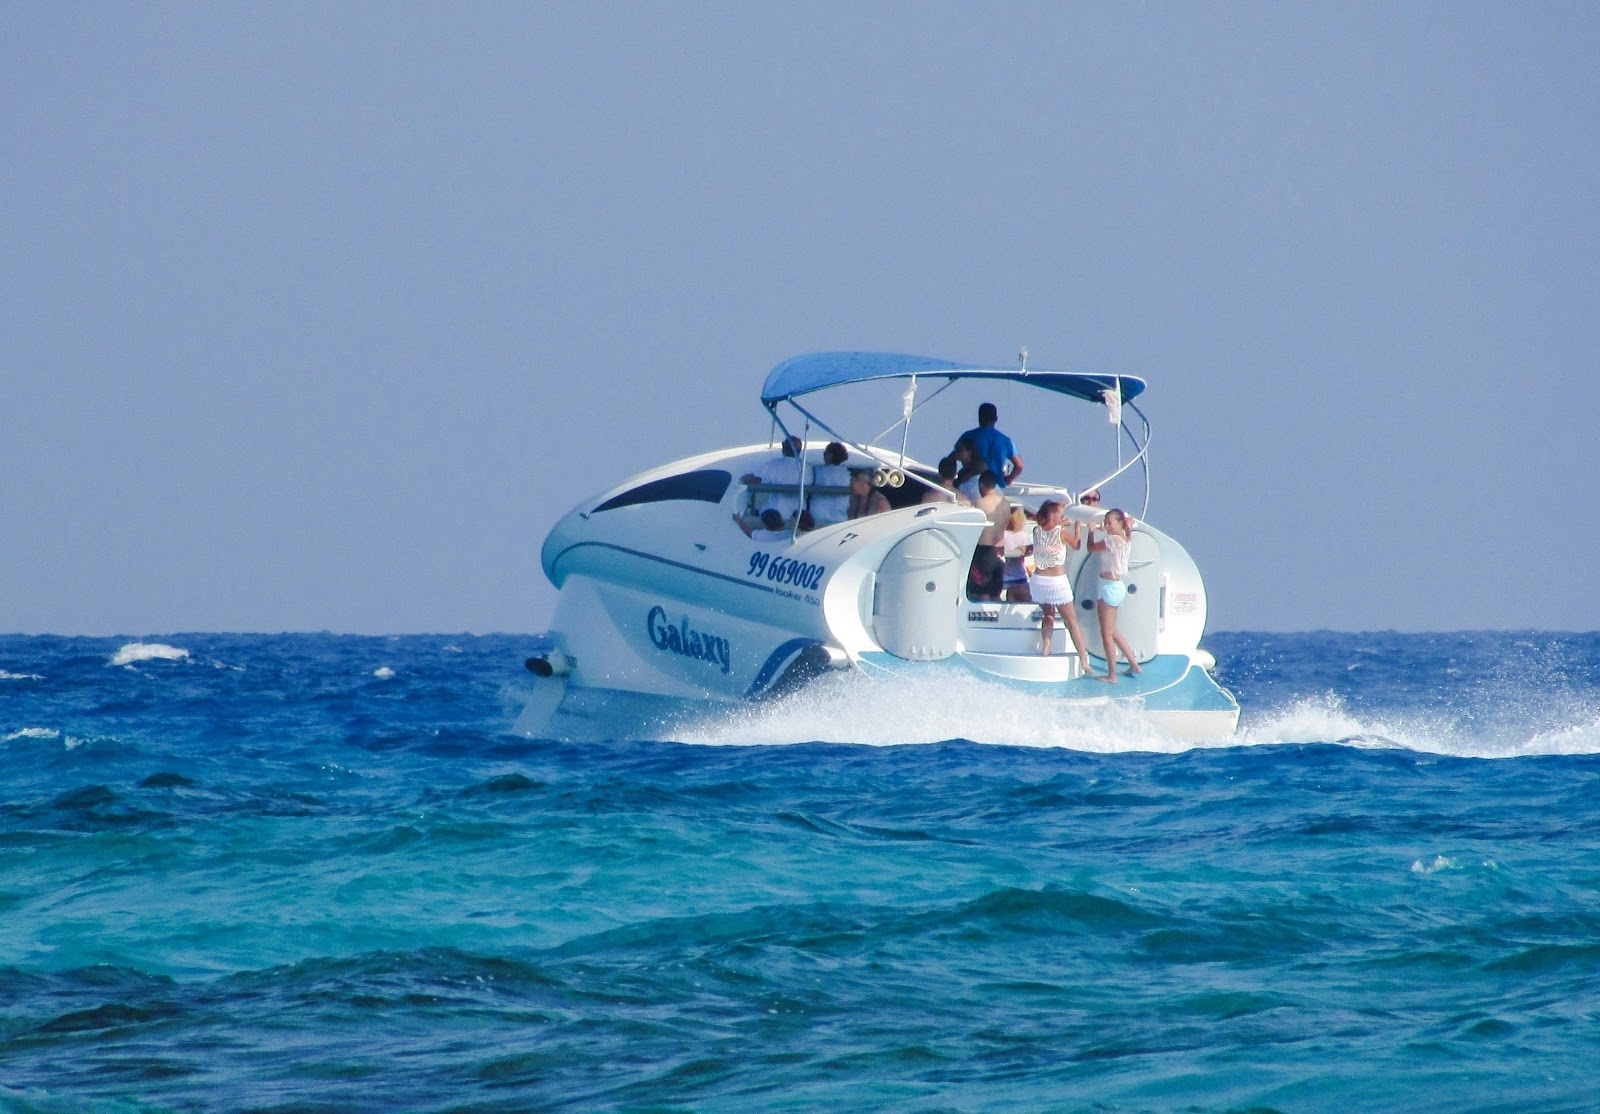 sea-boat-wave-summer-vacation-vehicle-spray-yacht-speed-tourism-leisure-motorboat-cruise-power-boating-watercraft-ecosystem-cyprus-catamaran-speed-boat-cruise-boat-inflatable-boat-powerboating-495858.jpg